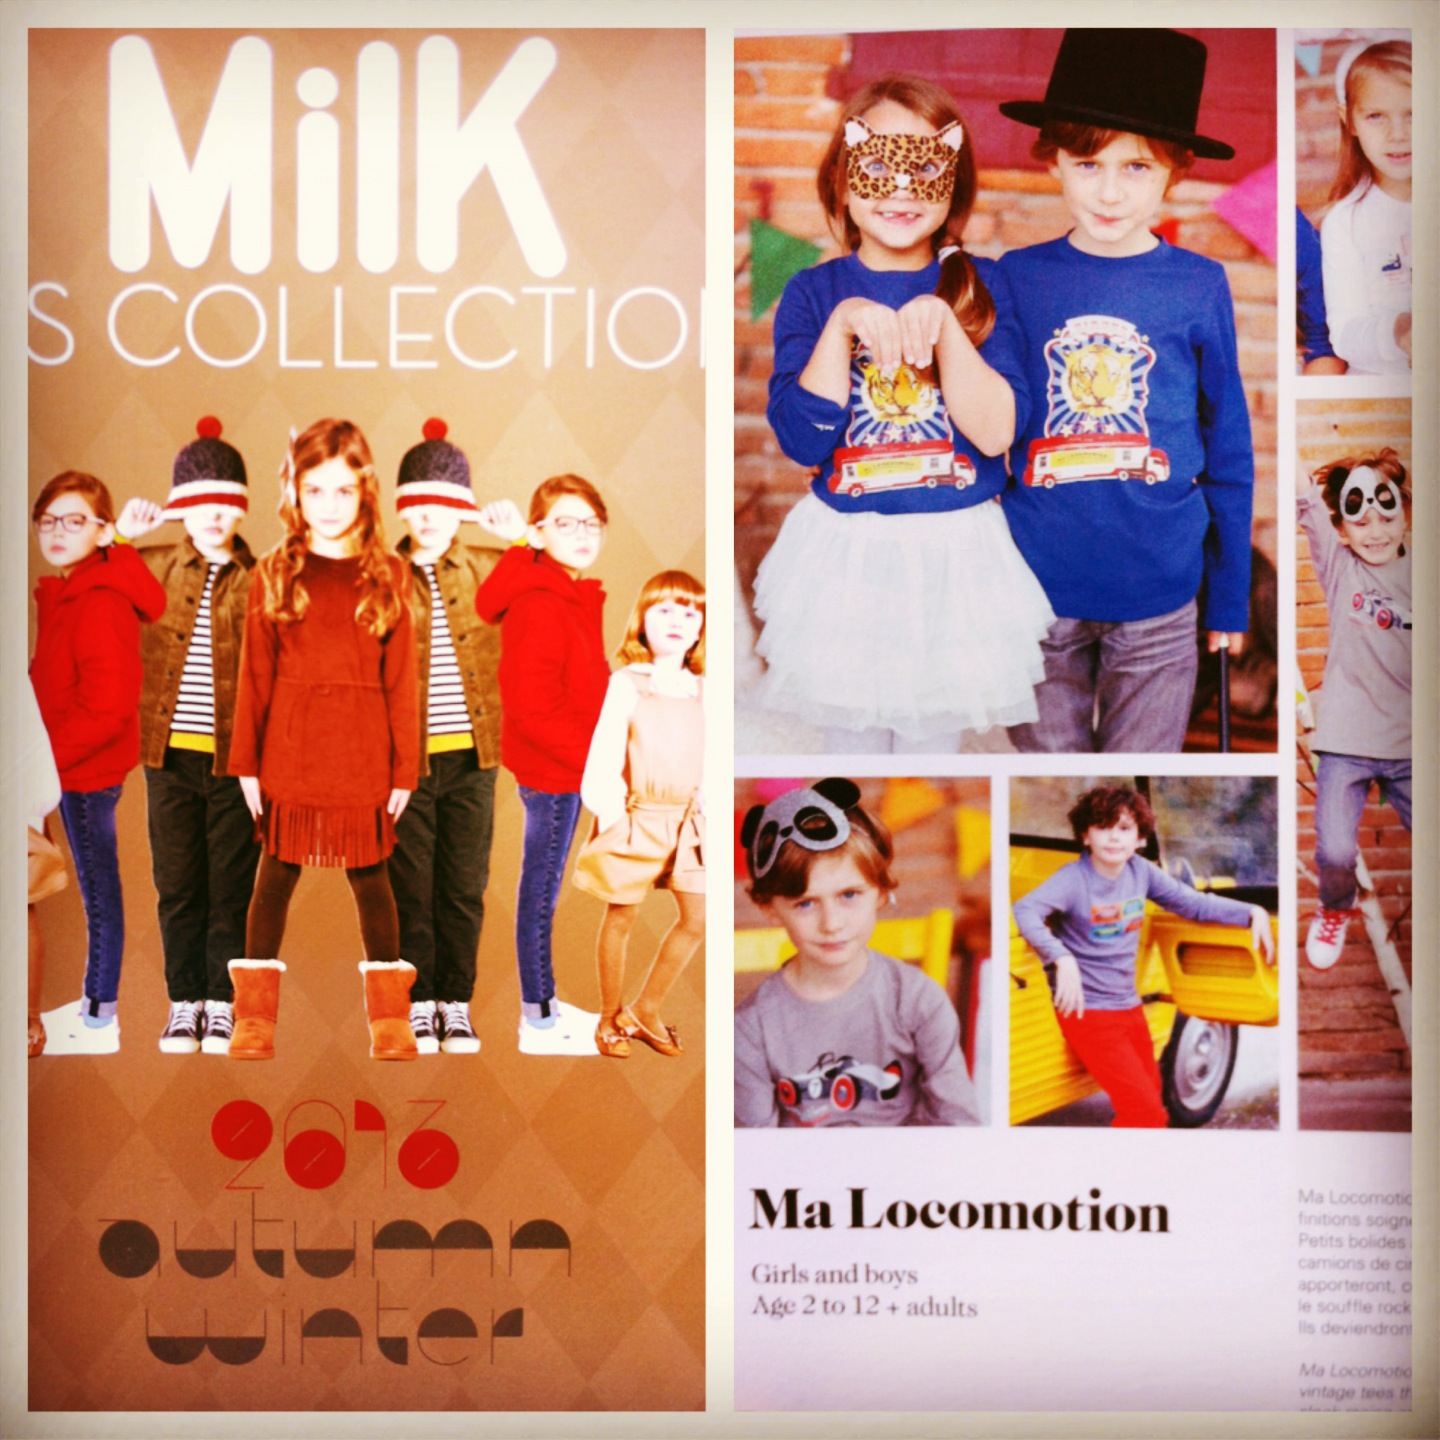 MalocomotionMilkmagazine